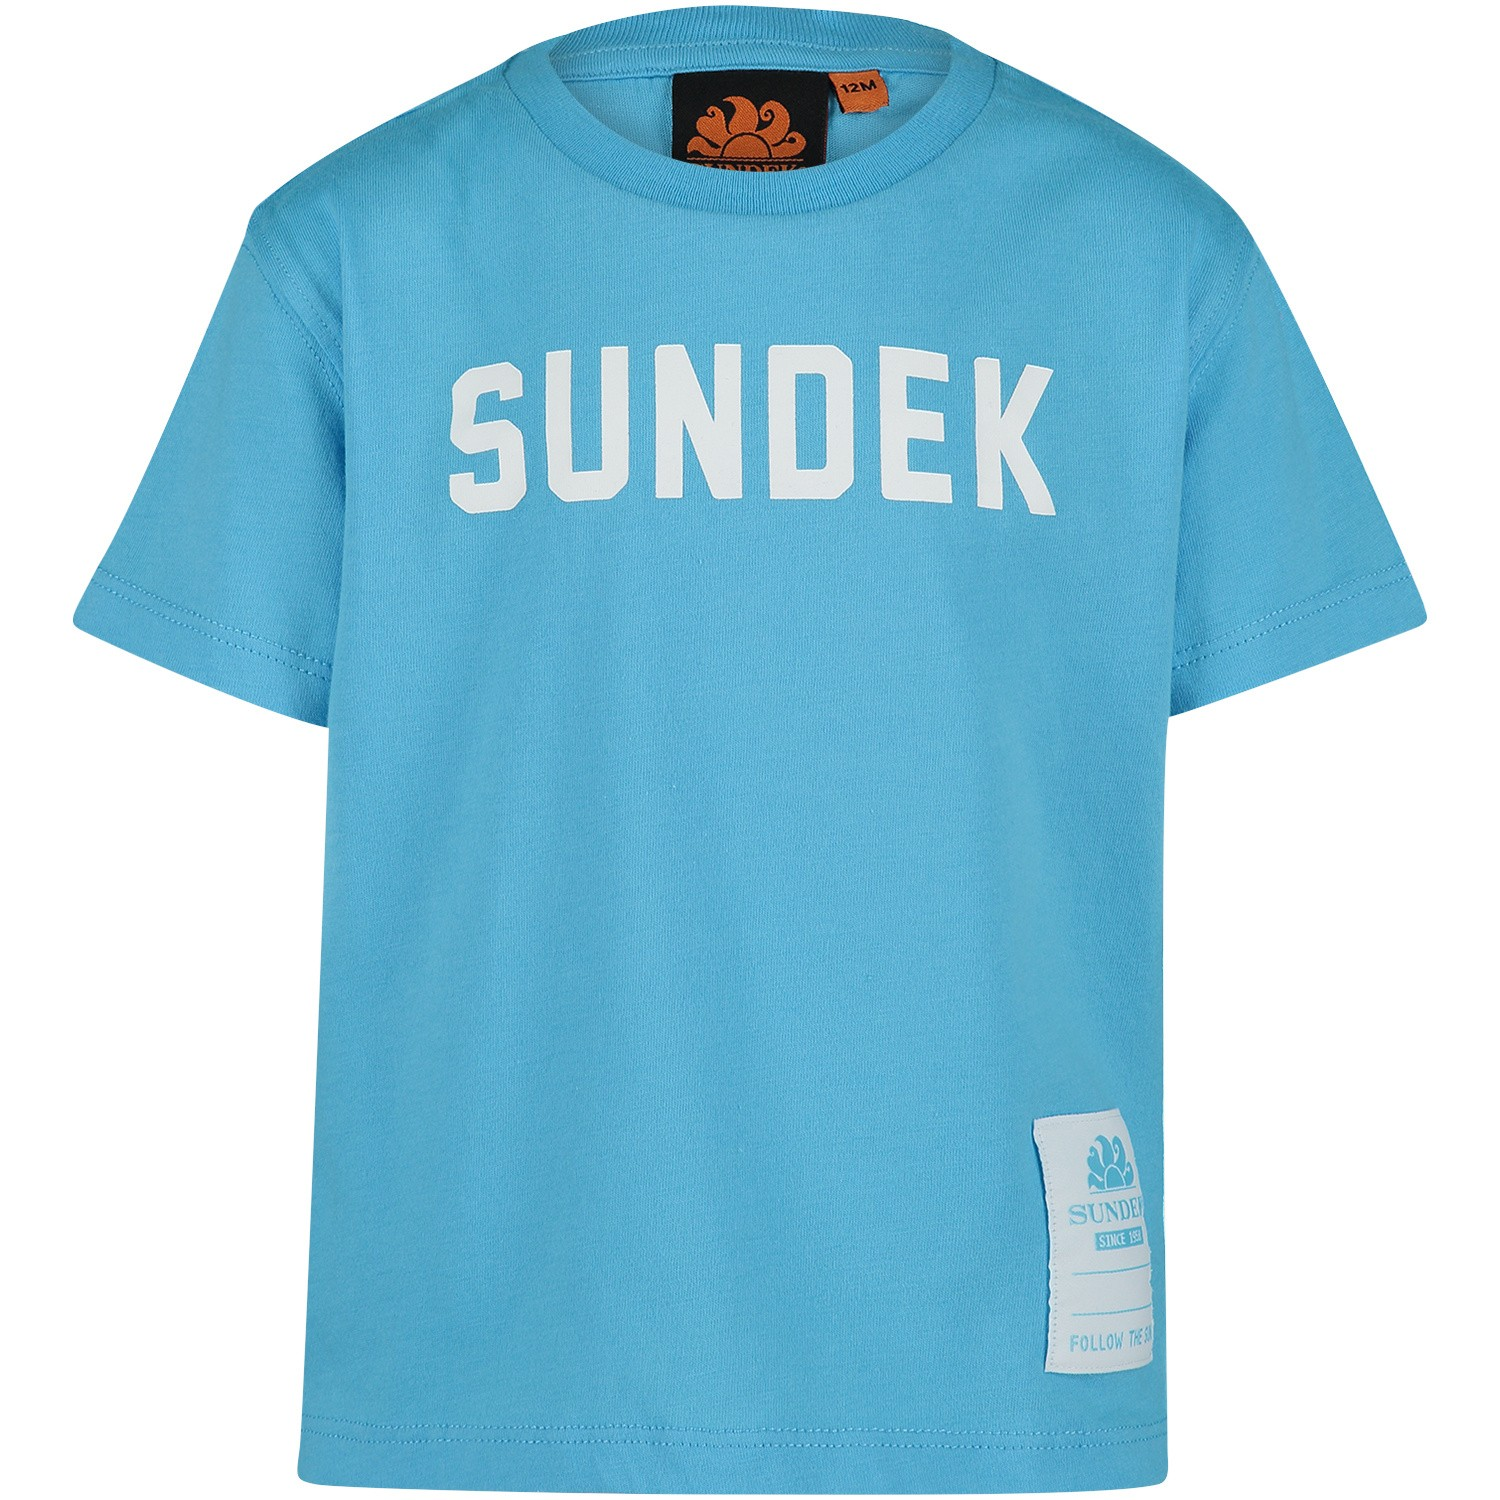 Picture of Sundeck B025TEJ7800 B baby shirt turquoise